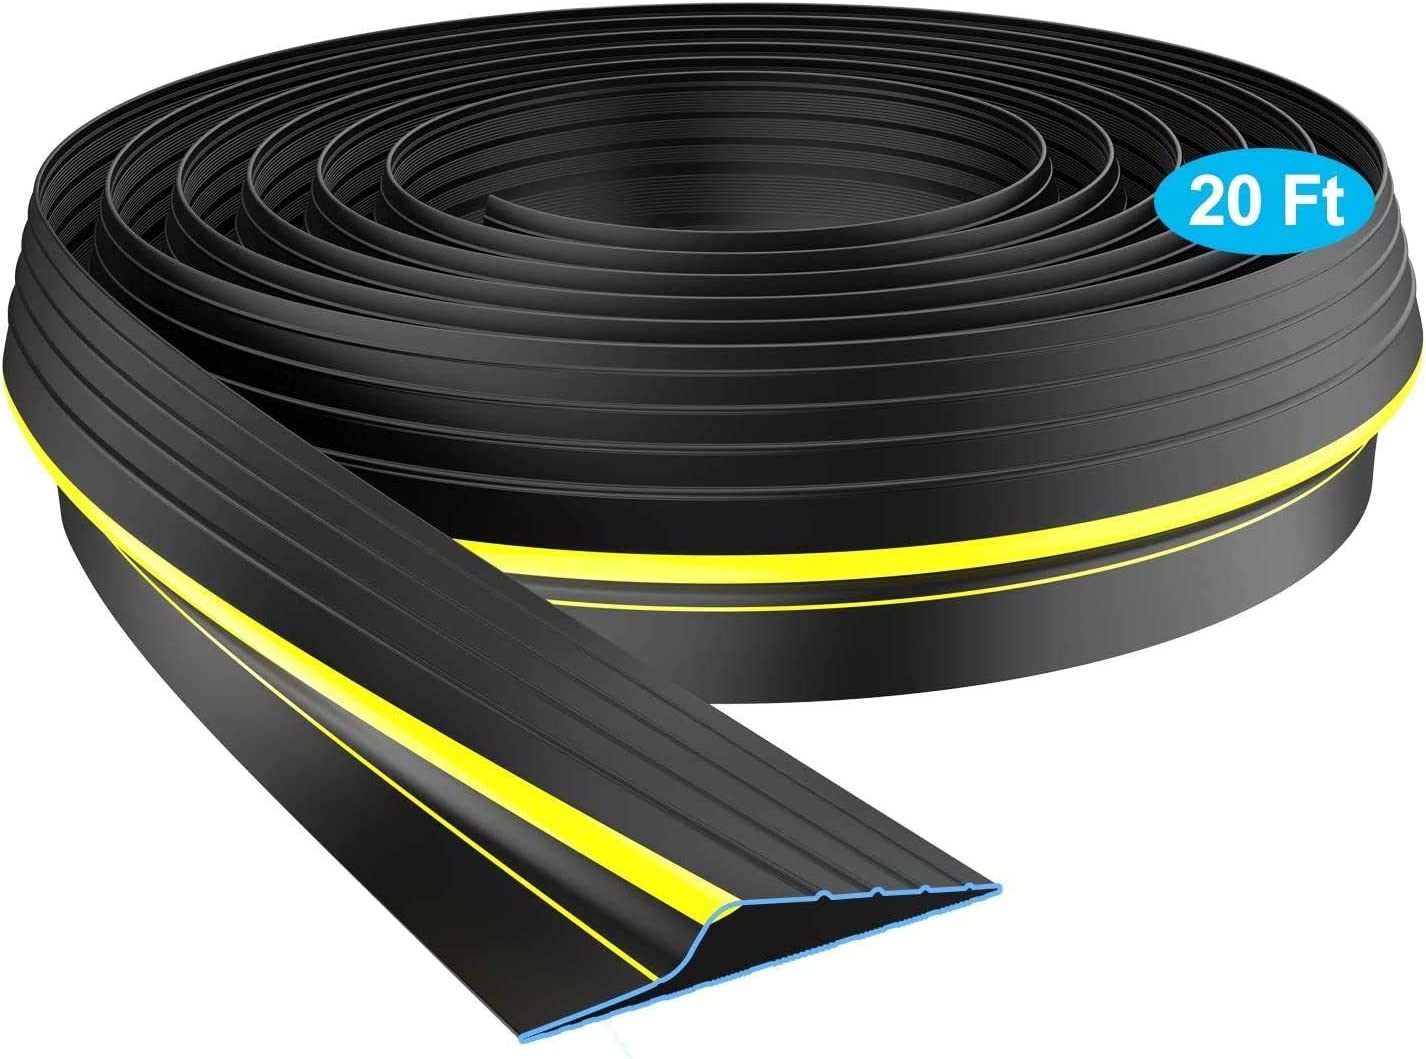 universal garage door rubber weather threshold seal bottom seal 9 Foot with nail